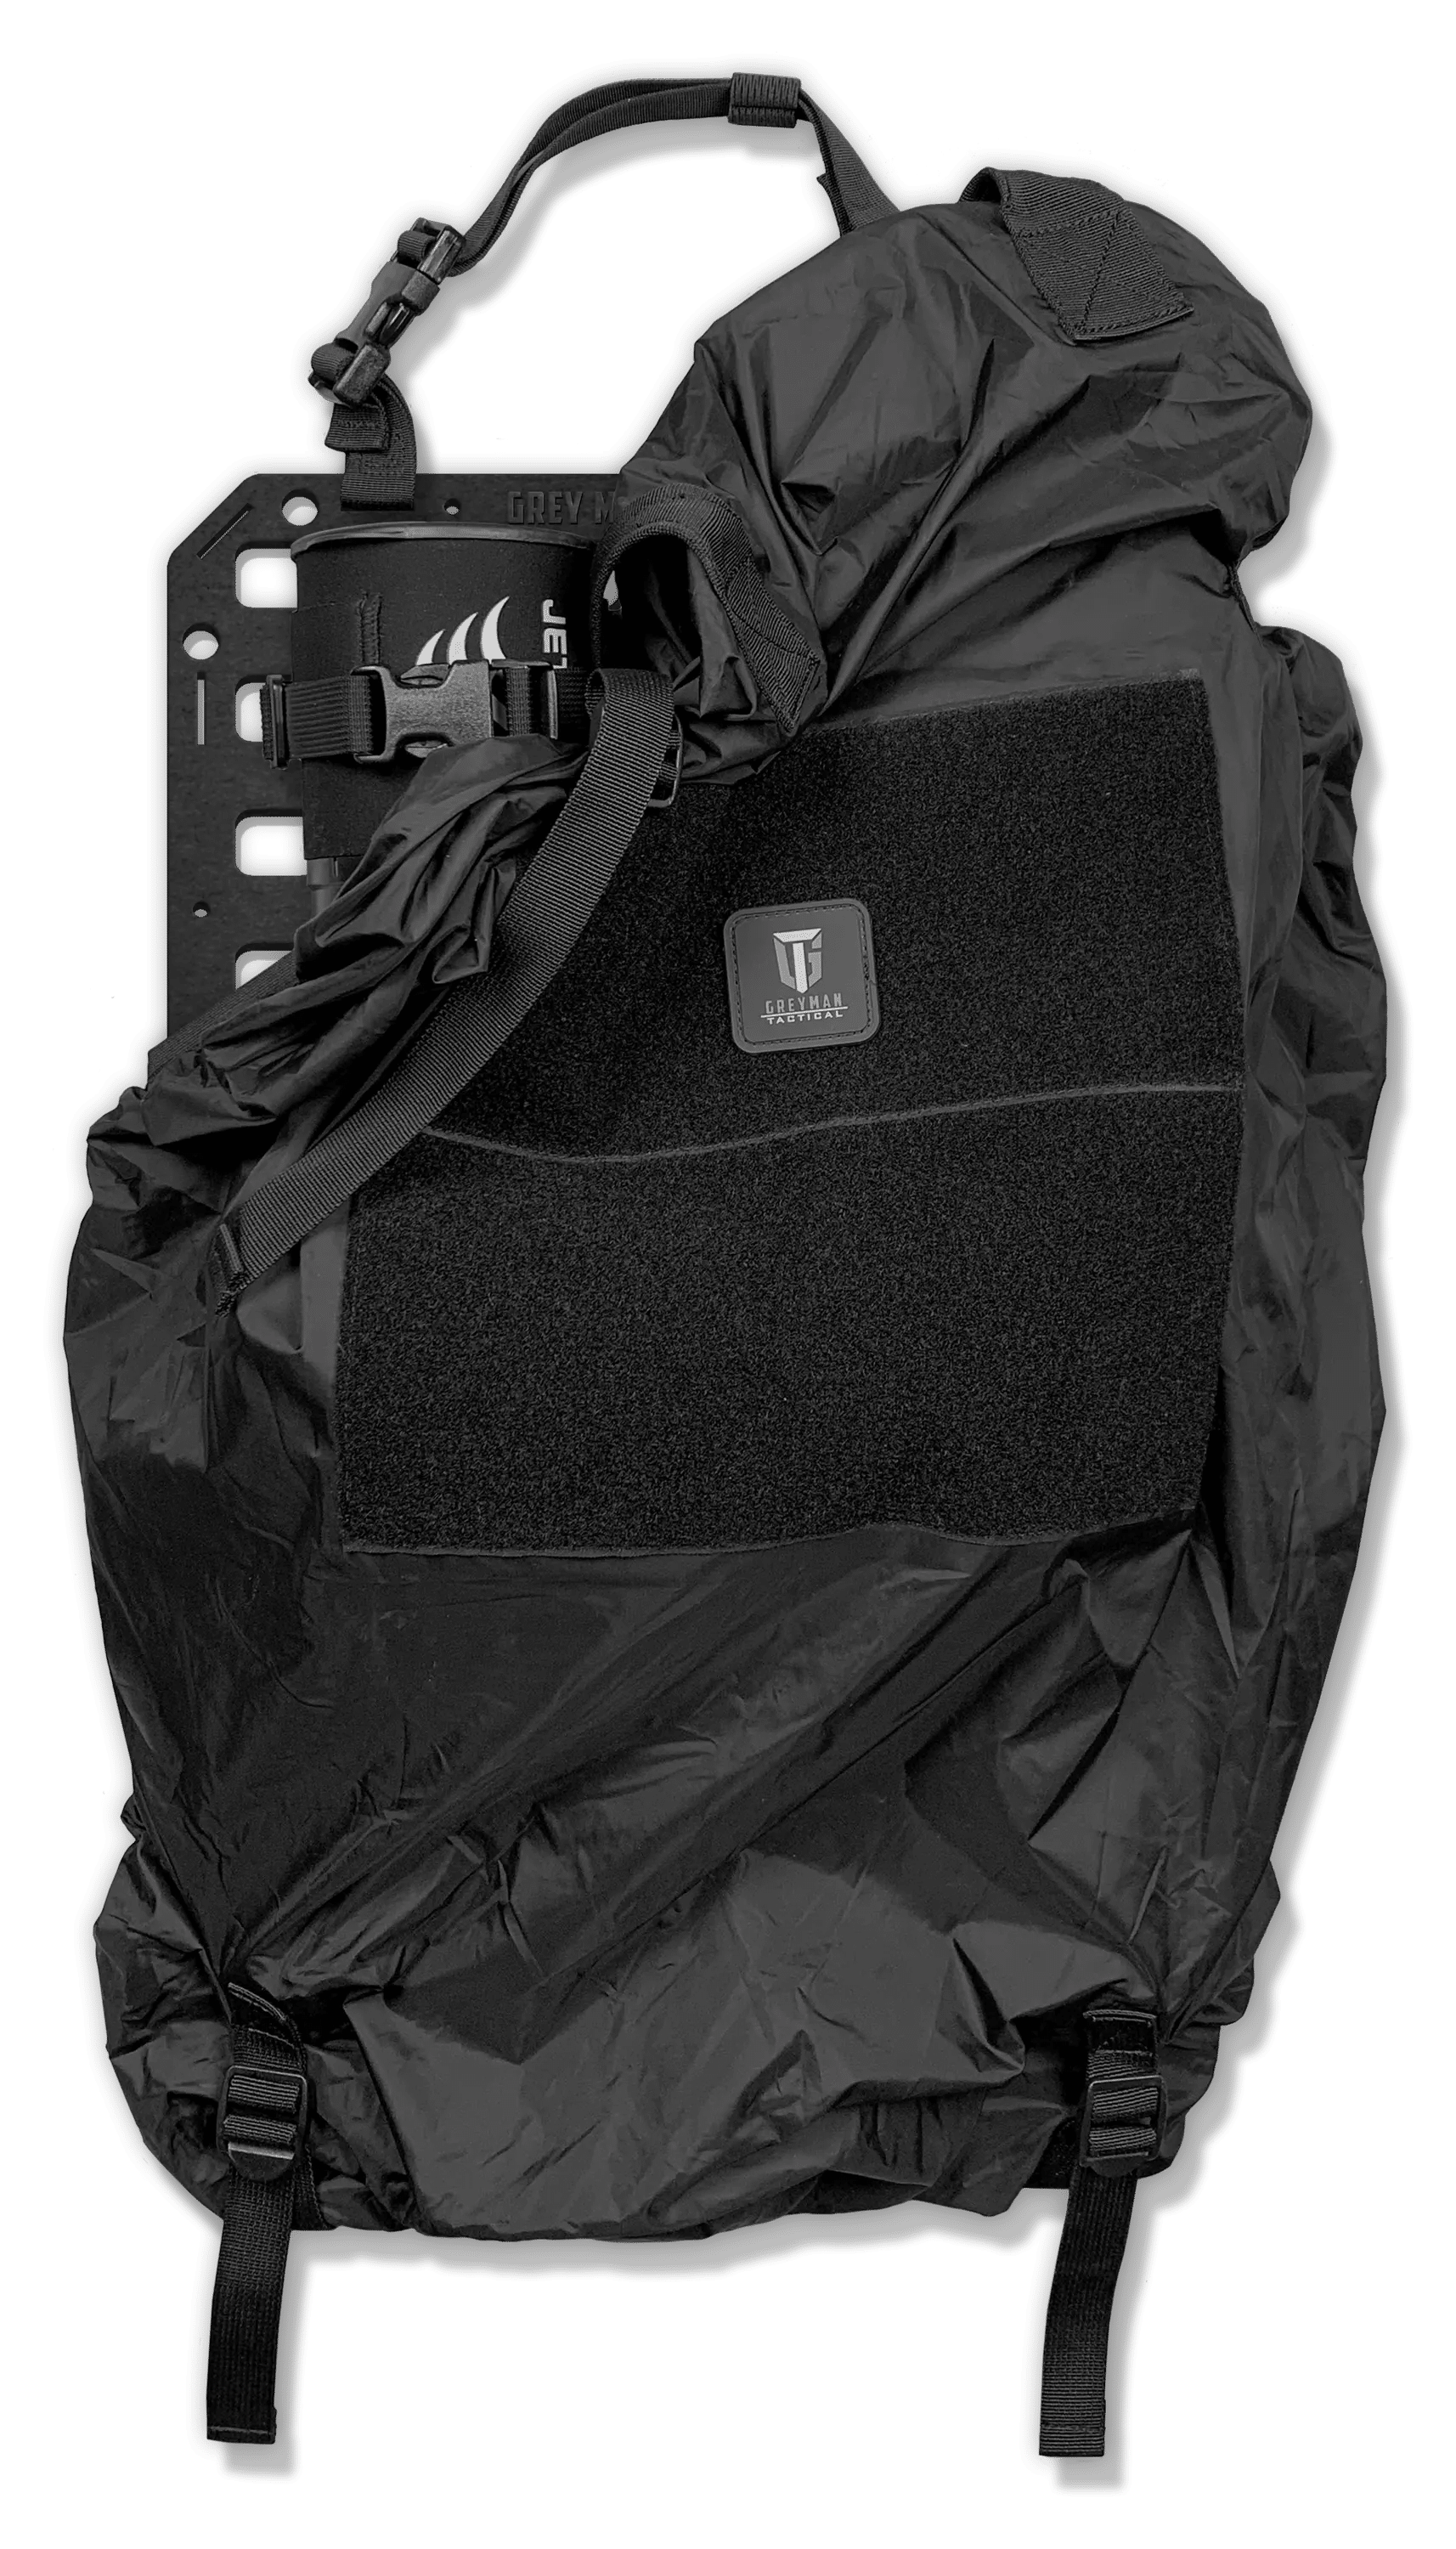 Cover for molle panel to hide your gear from people looking inside your vehicle